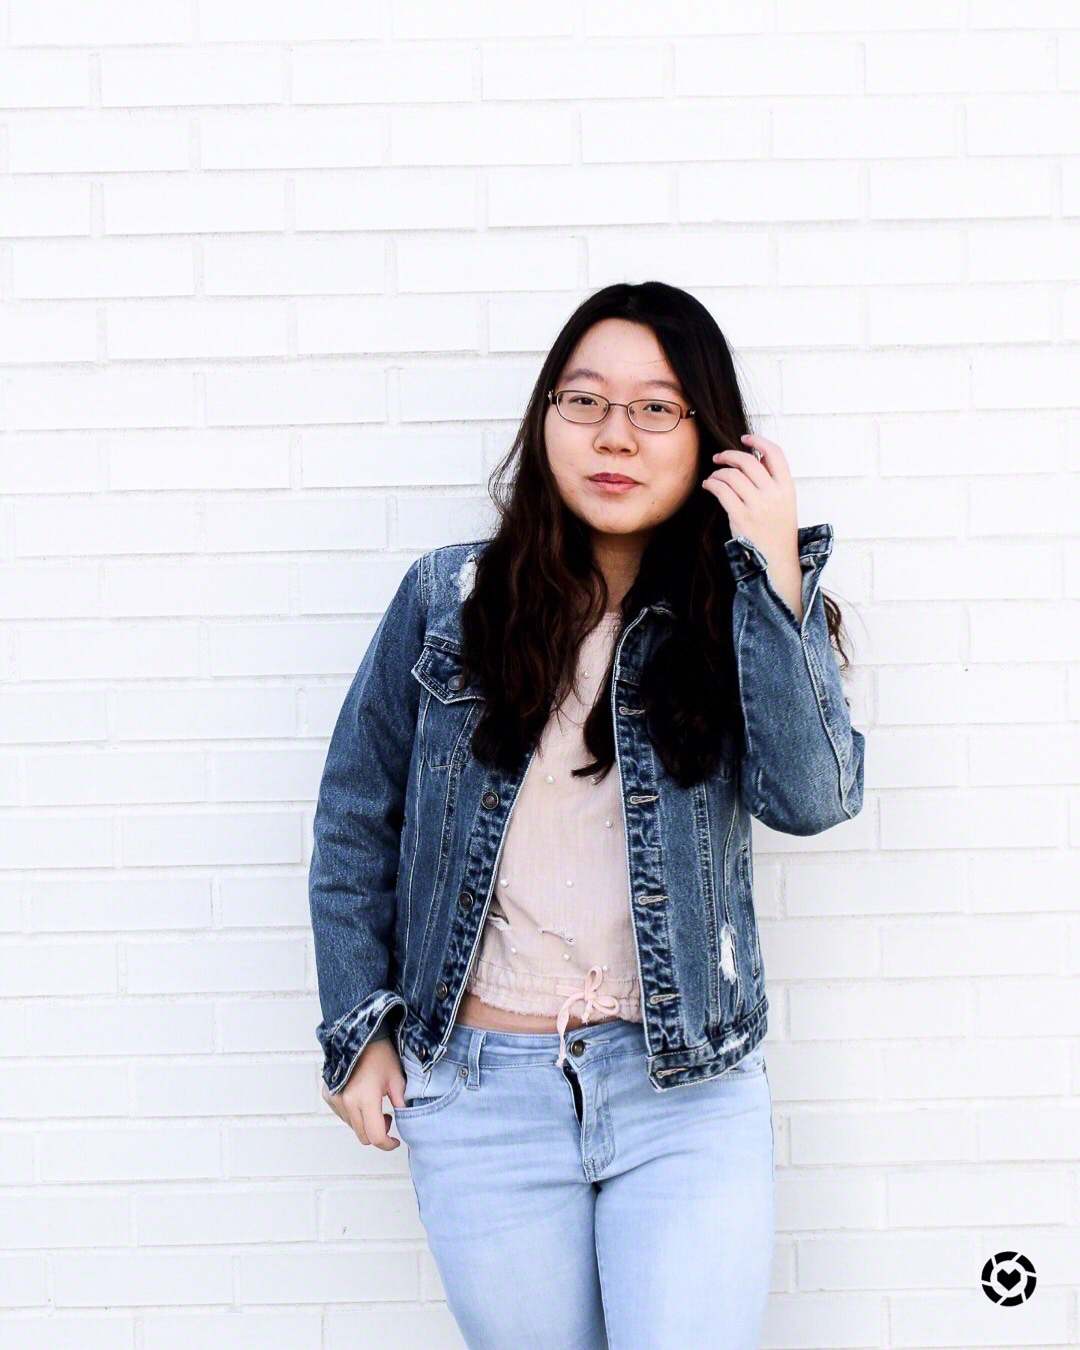 Borrowing Co-Op's white walls, this image is  LiketoKnow.It enabled   Pic creds Amber Hsu